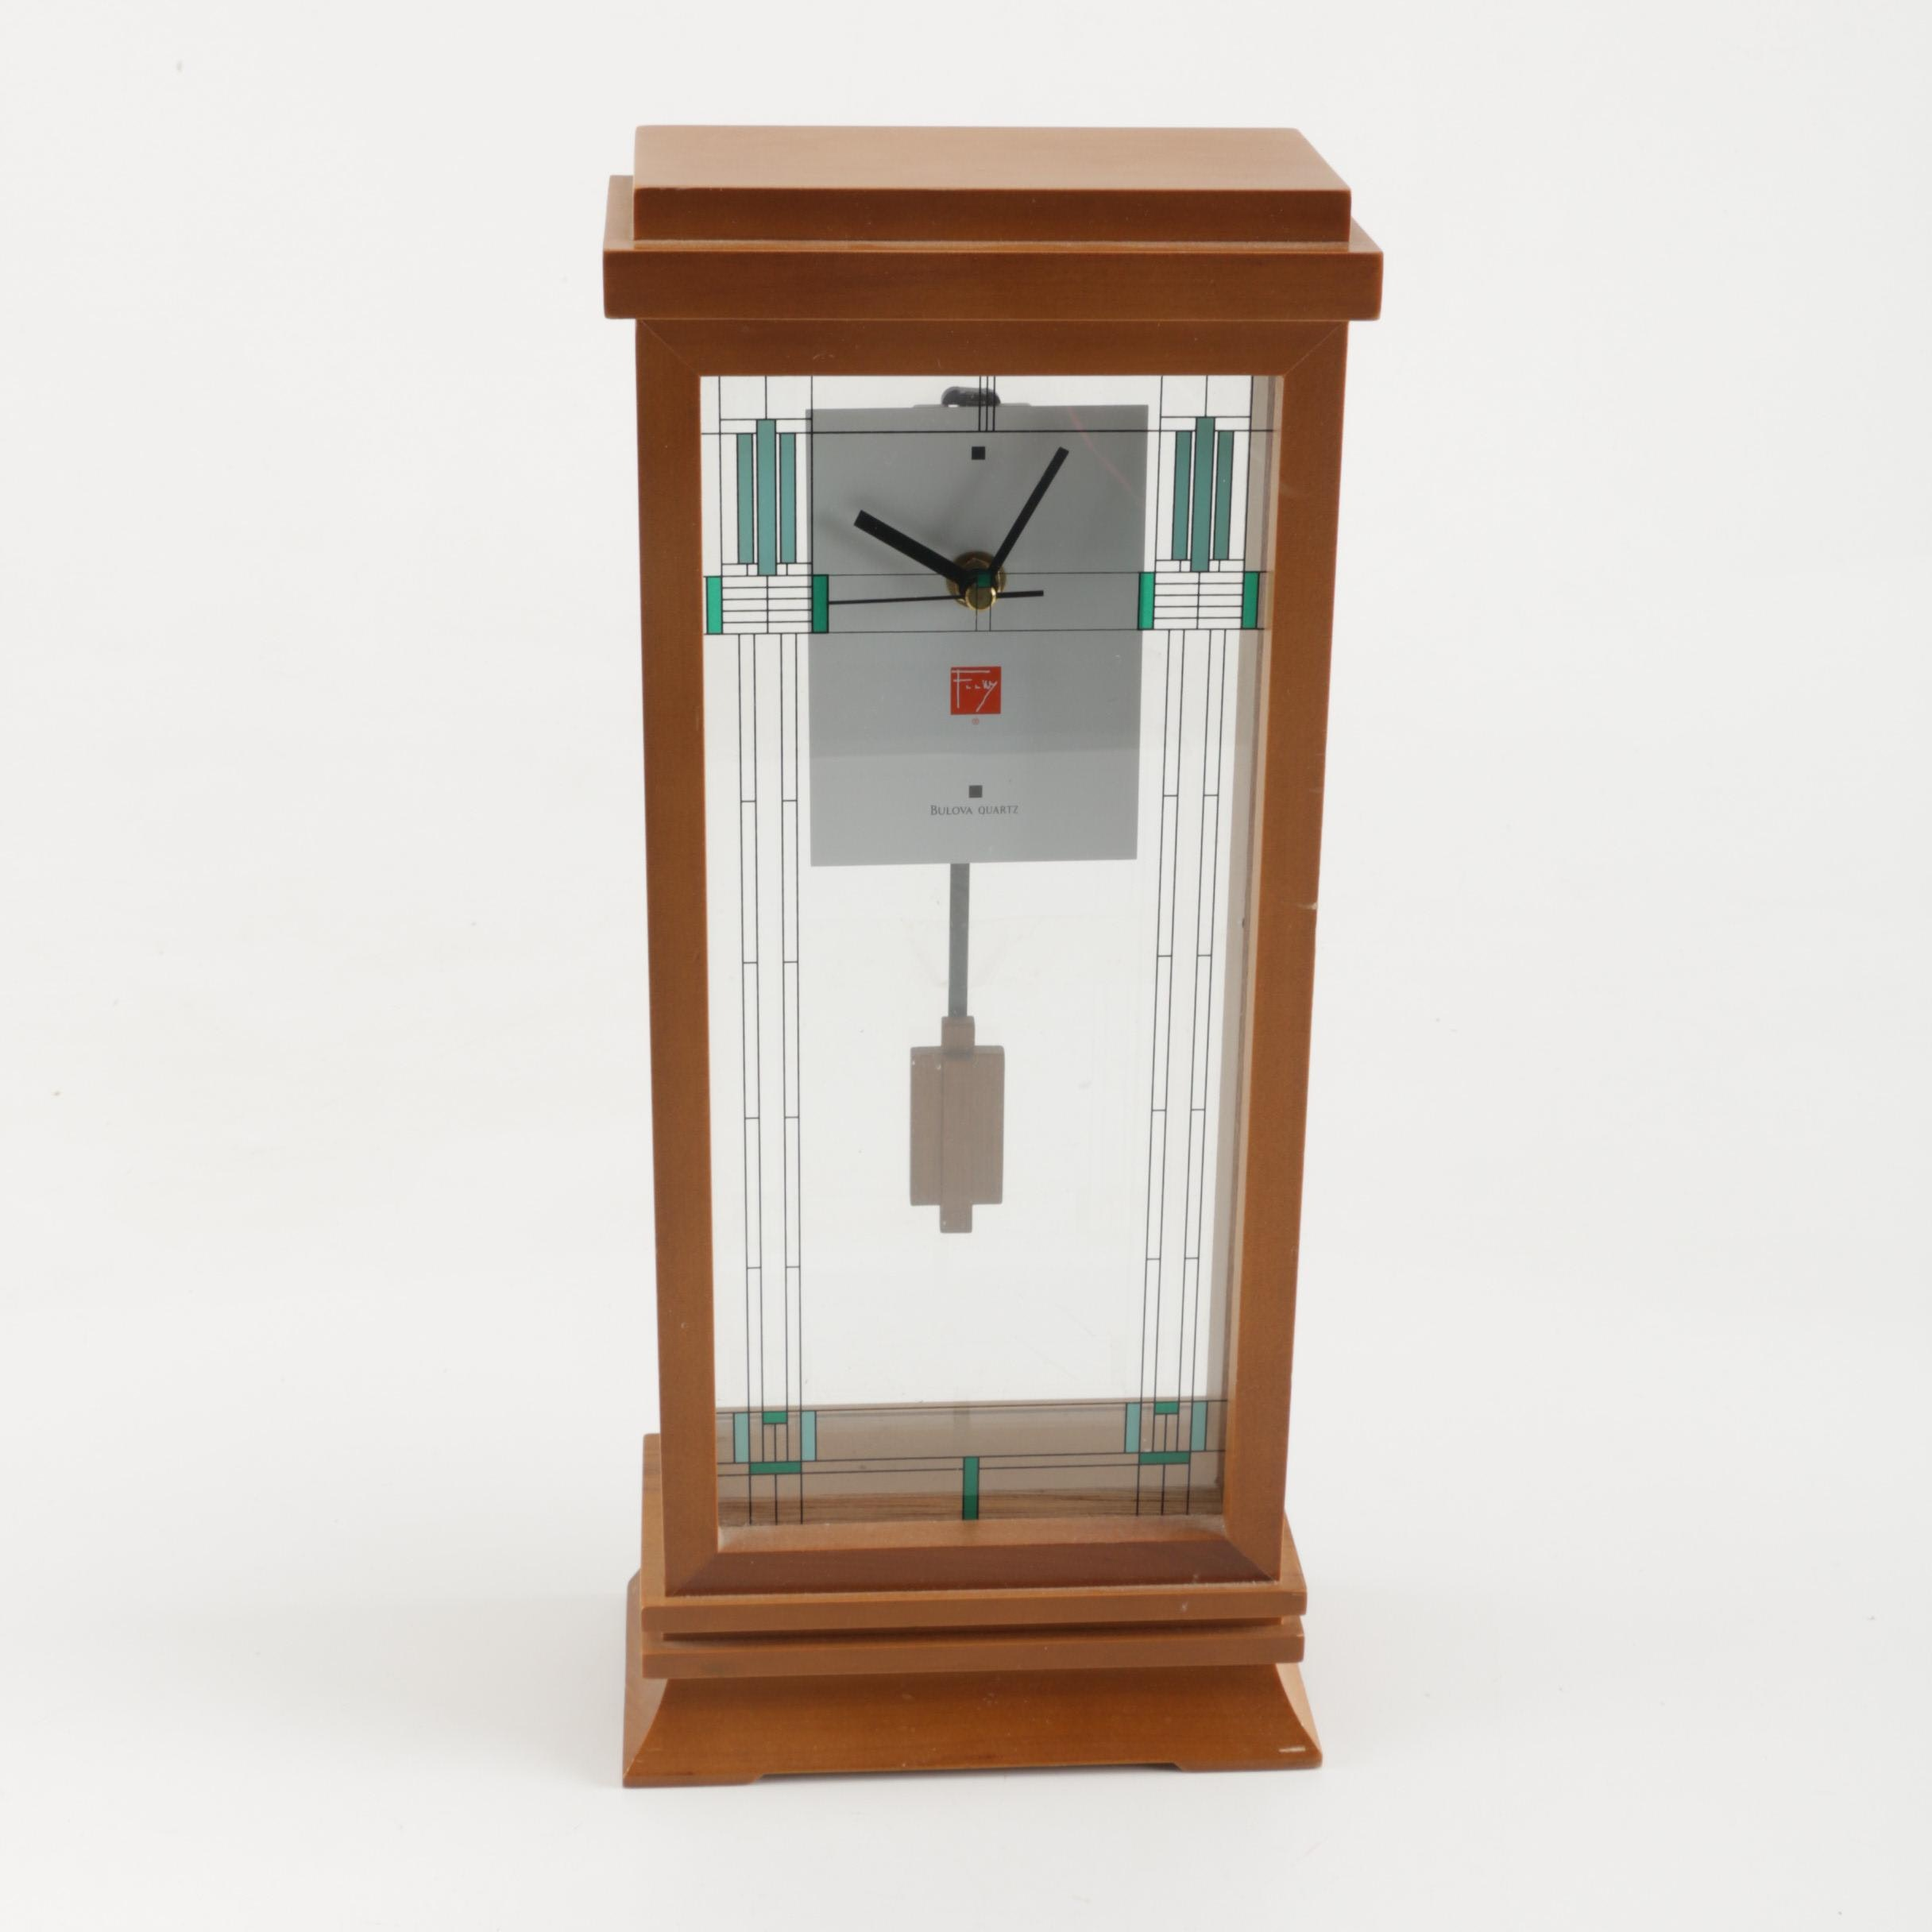 Willits Mantel Clock From the Frank Lloyd Wright Collection by Bulova